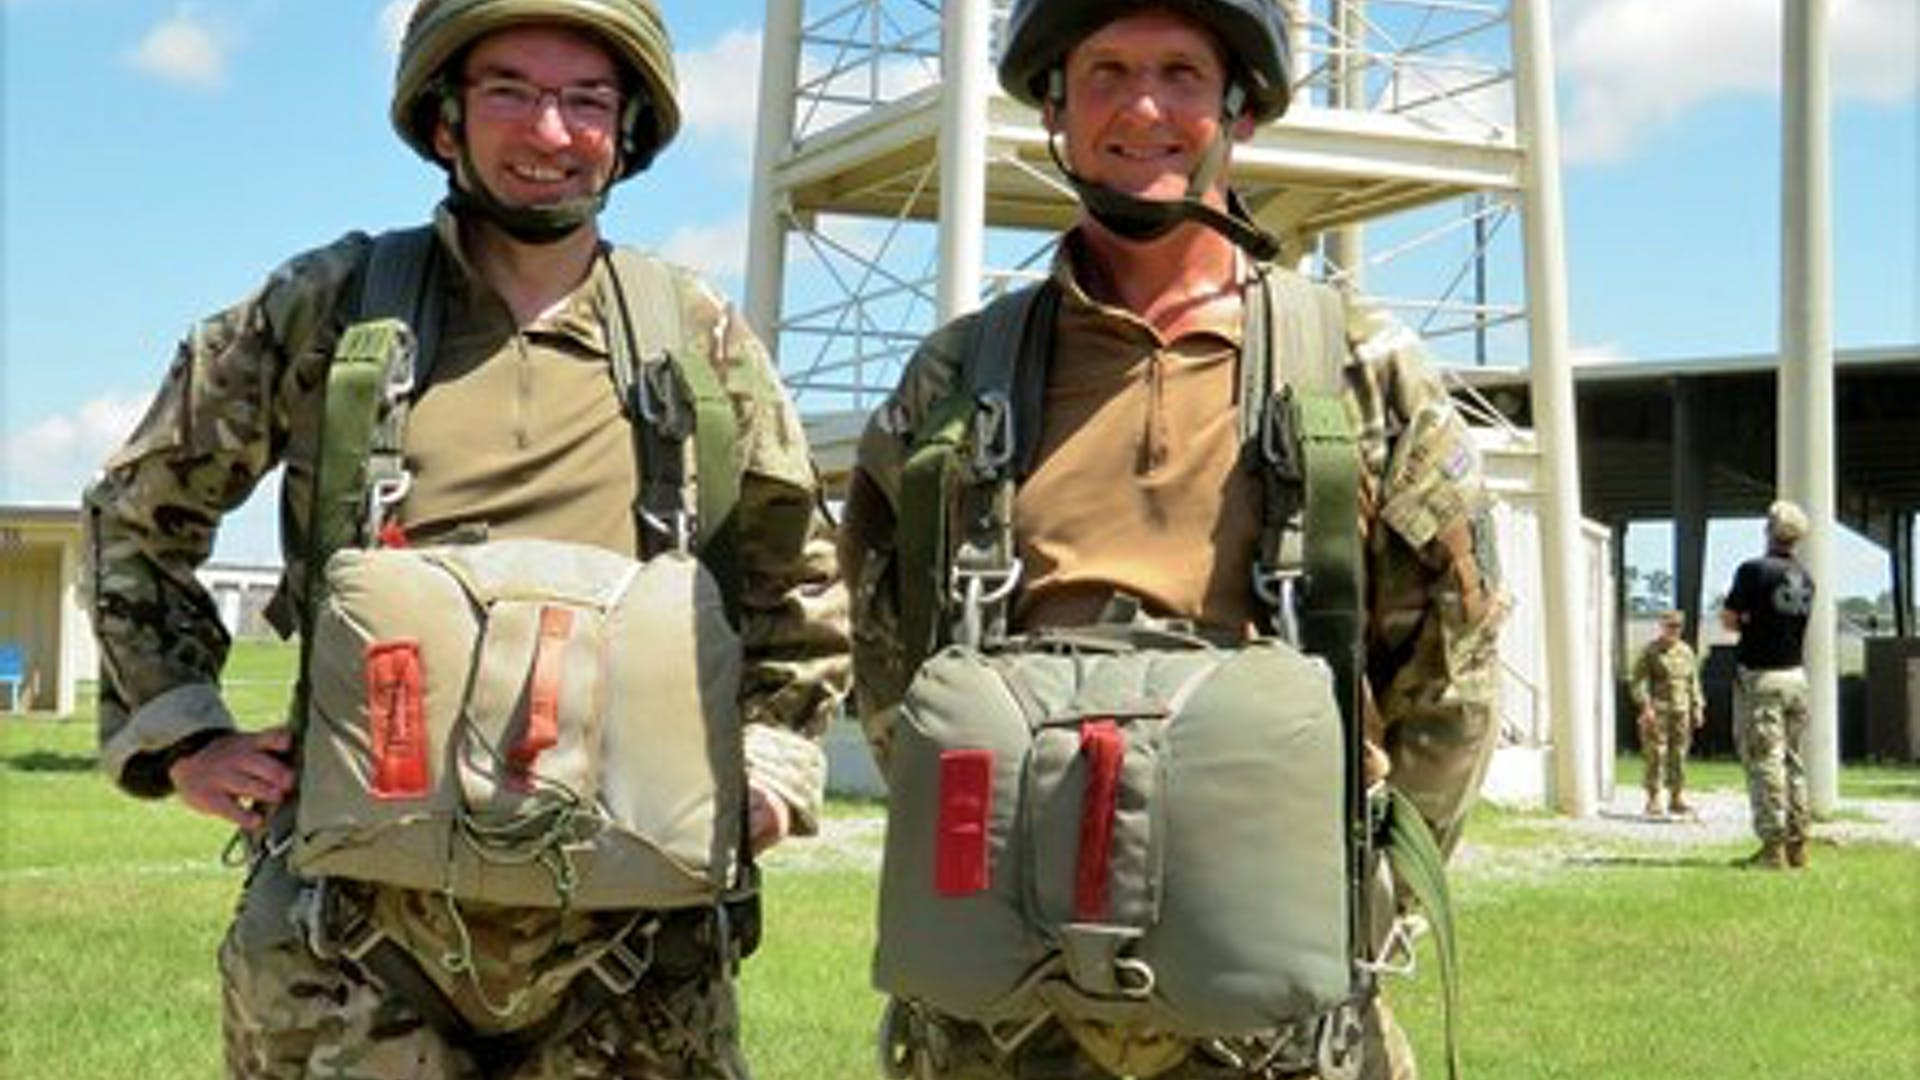 Lt Col Godfrey and Maj Pooley read to jump from the 34ft towers small 1